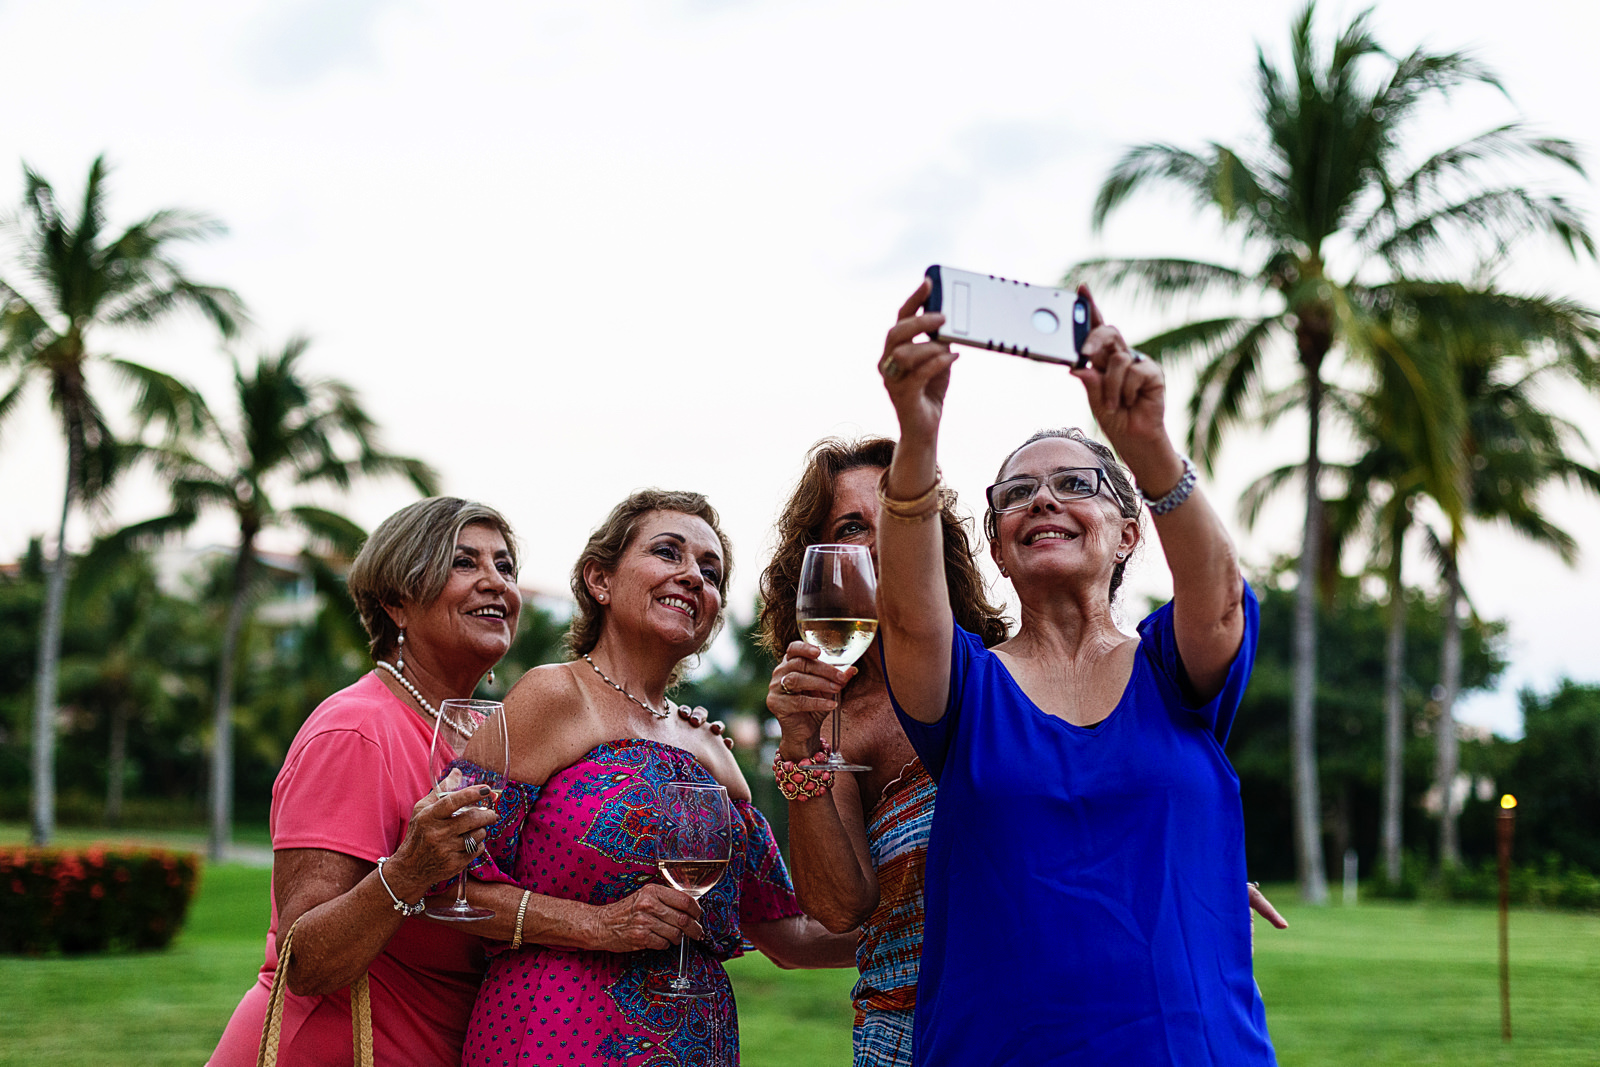 Mother of the groom and family girls taking a selfie with a cell phone